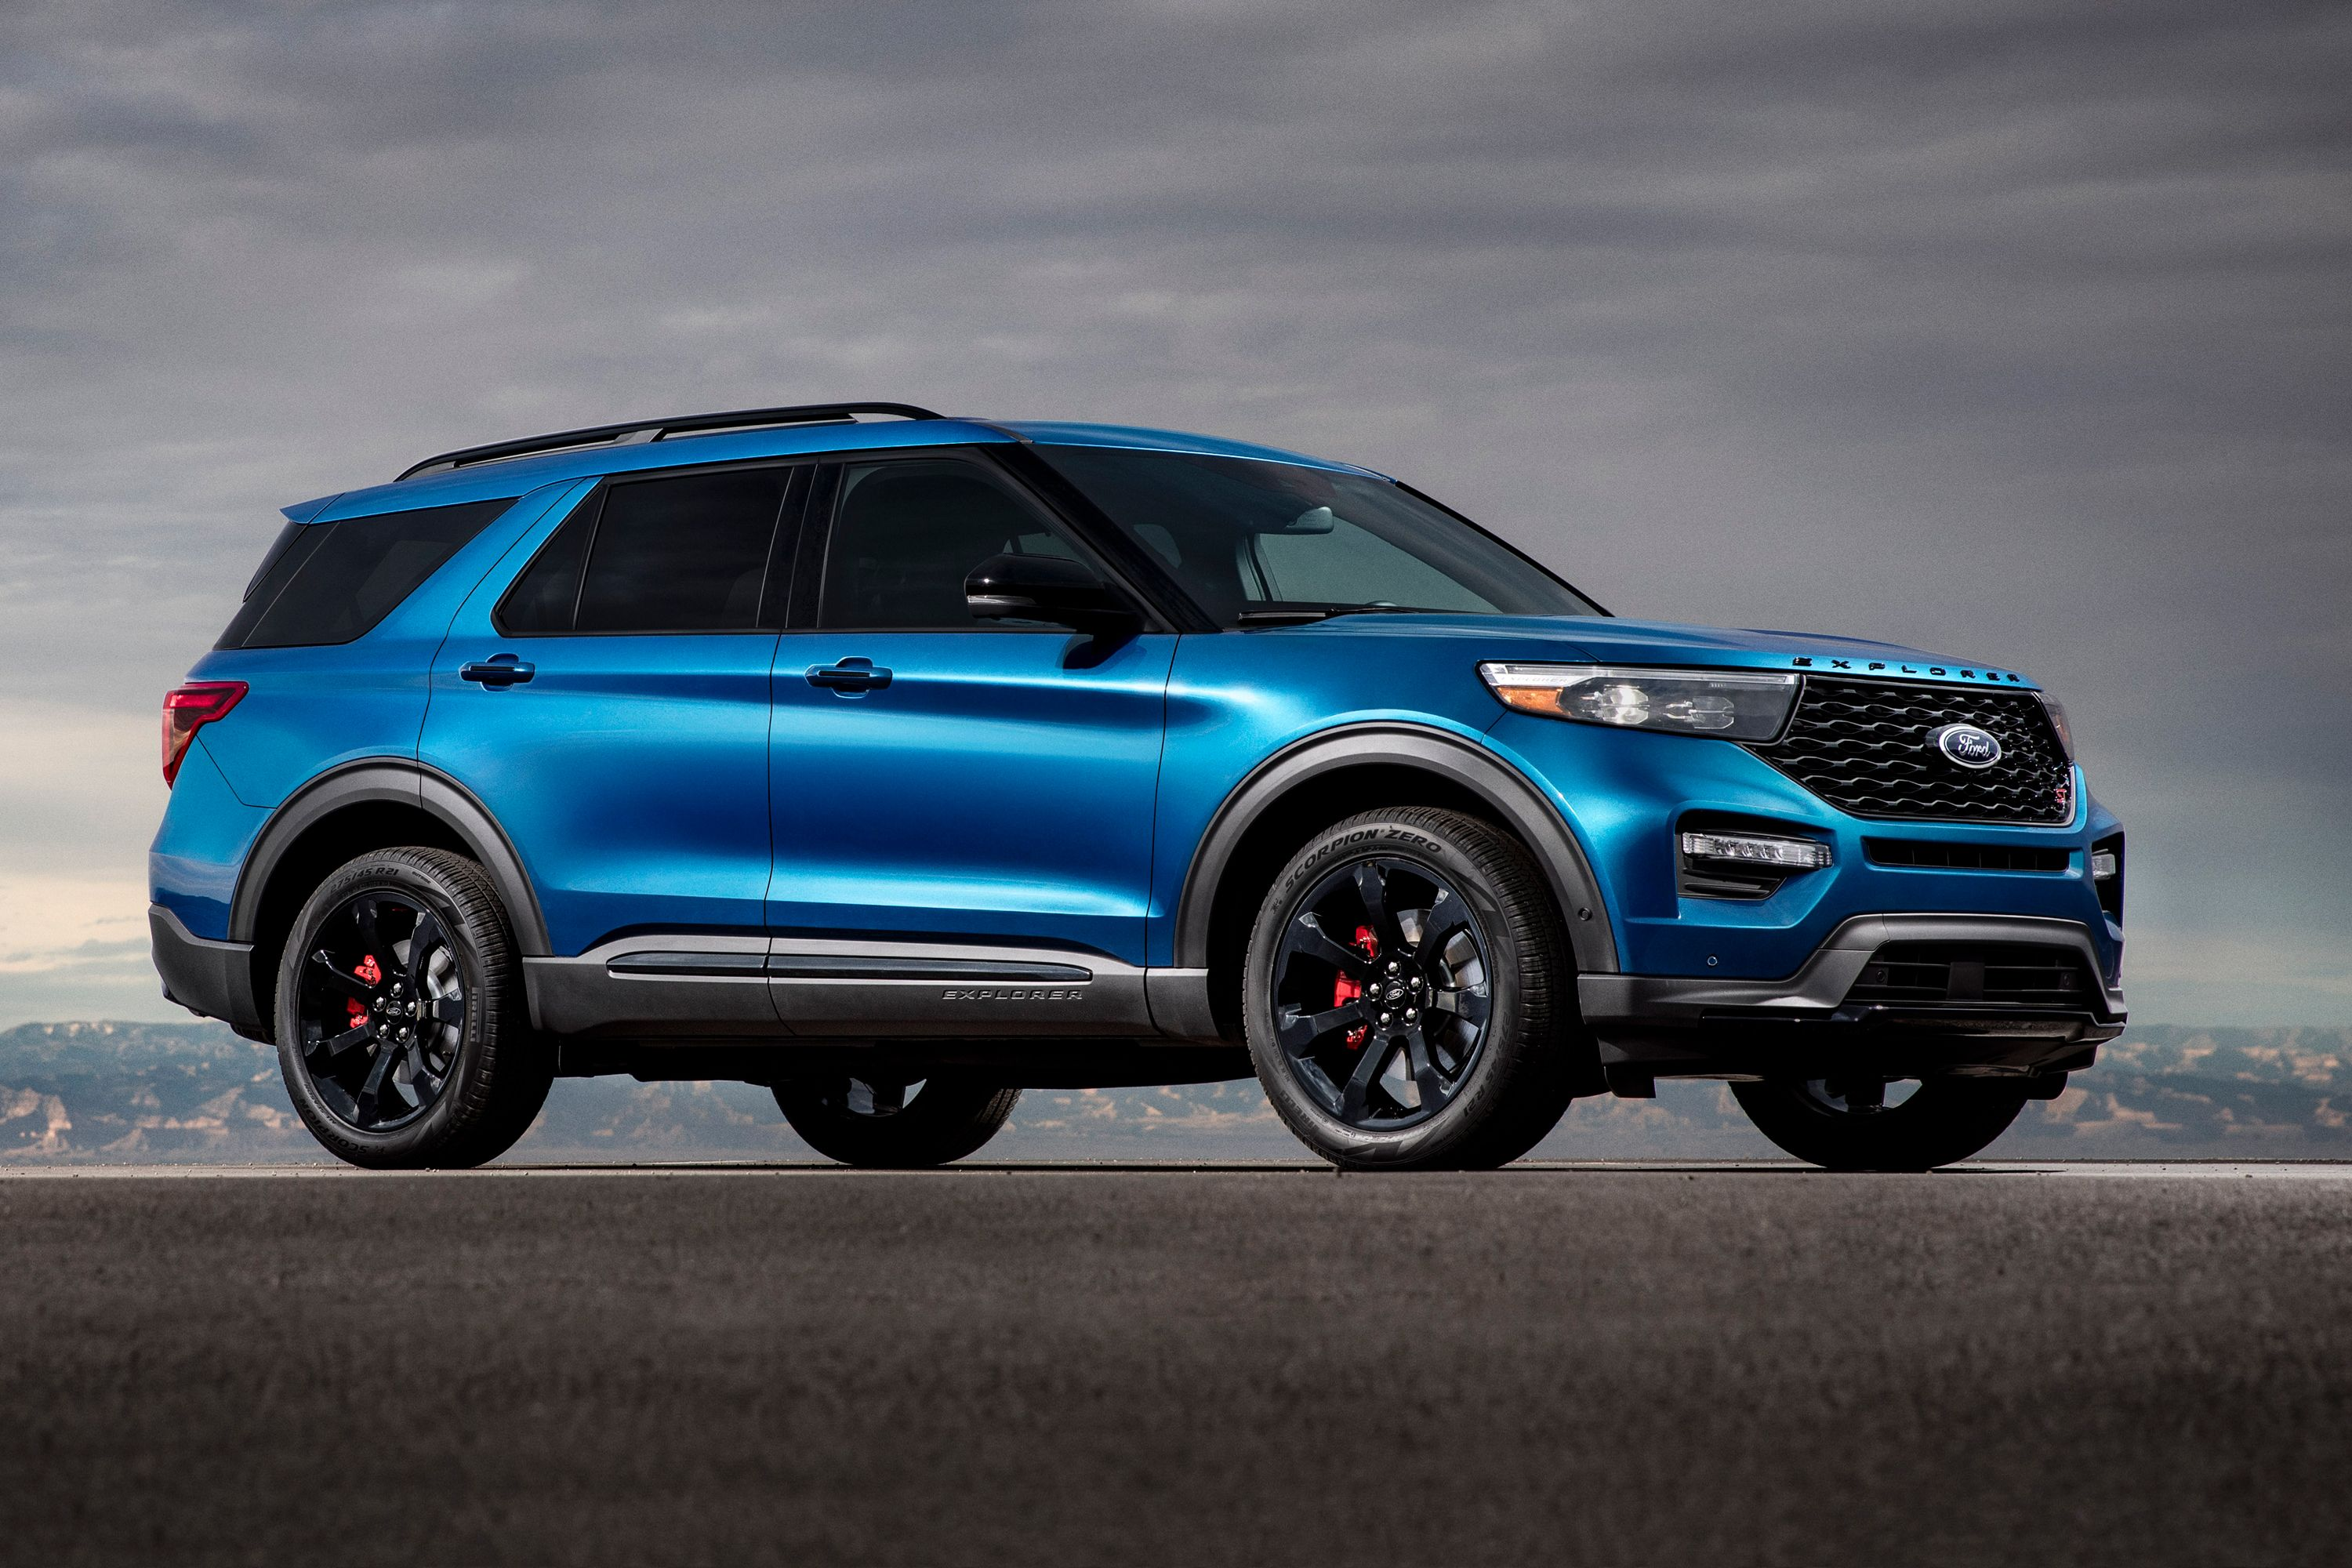 5 Ford Explorer Review, Pricing, and Specs